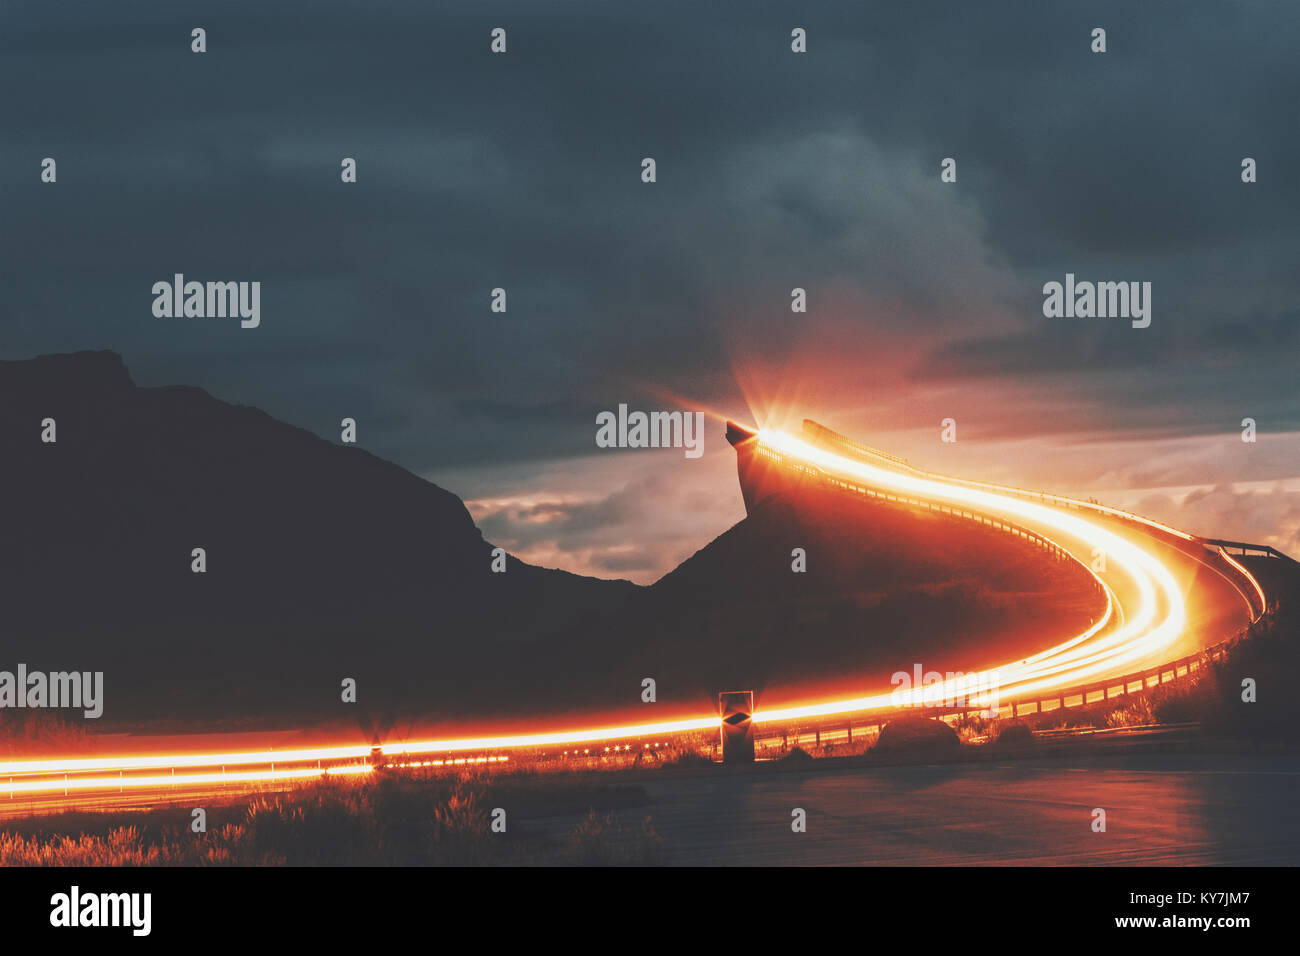 Atlantic road in Norway night Storseisundet bridge over ocean way to sky scandinavian travel landmarks - Stock Image